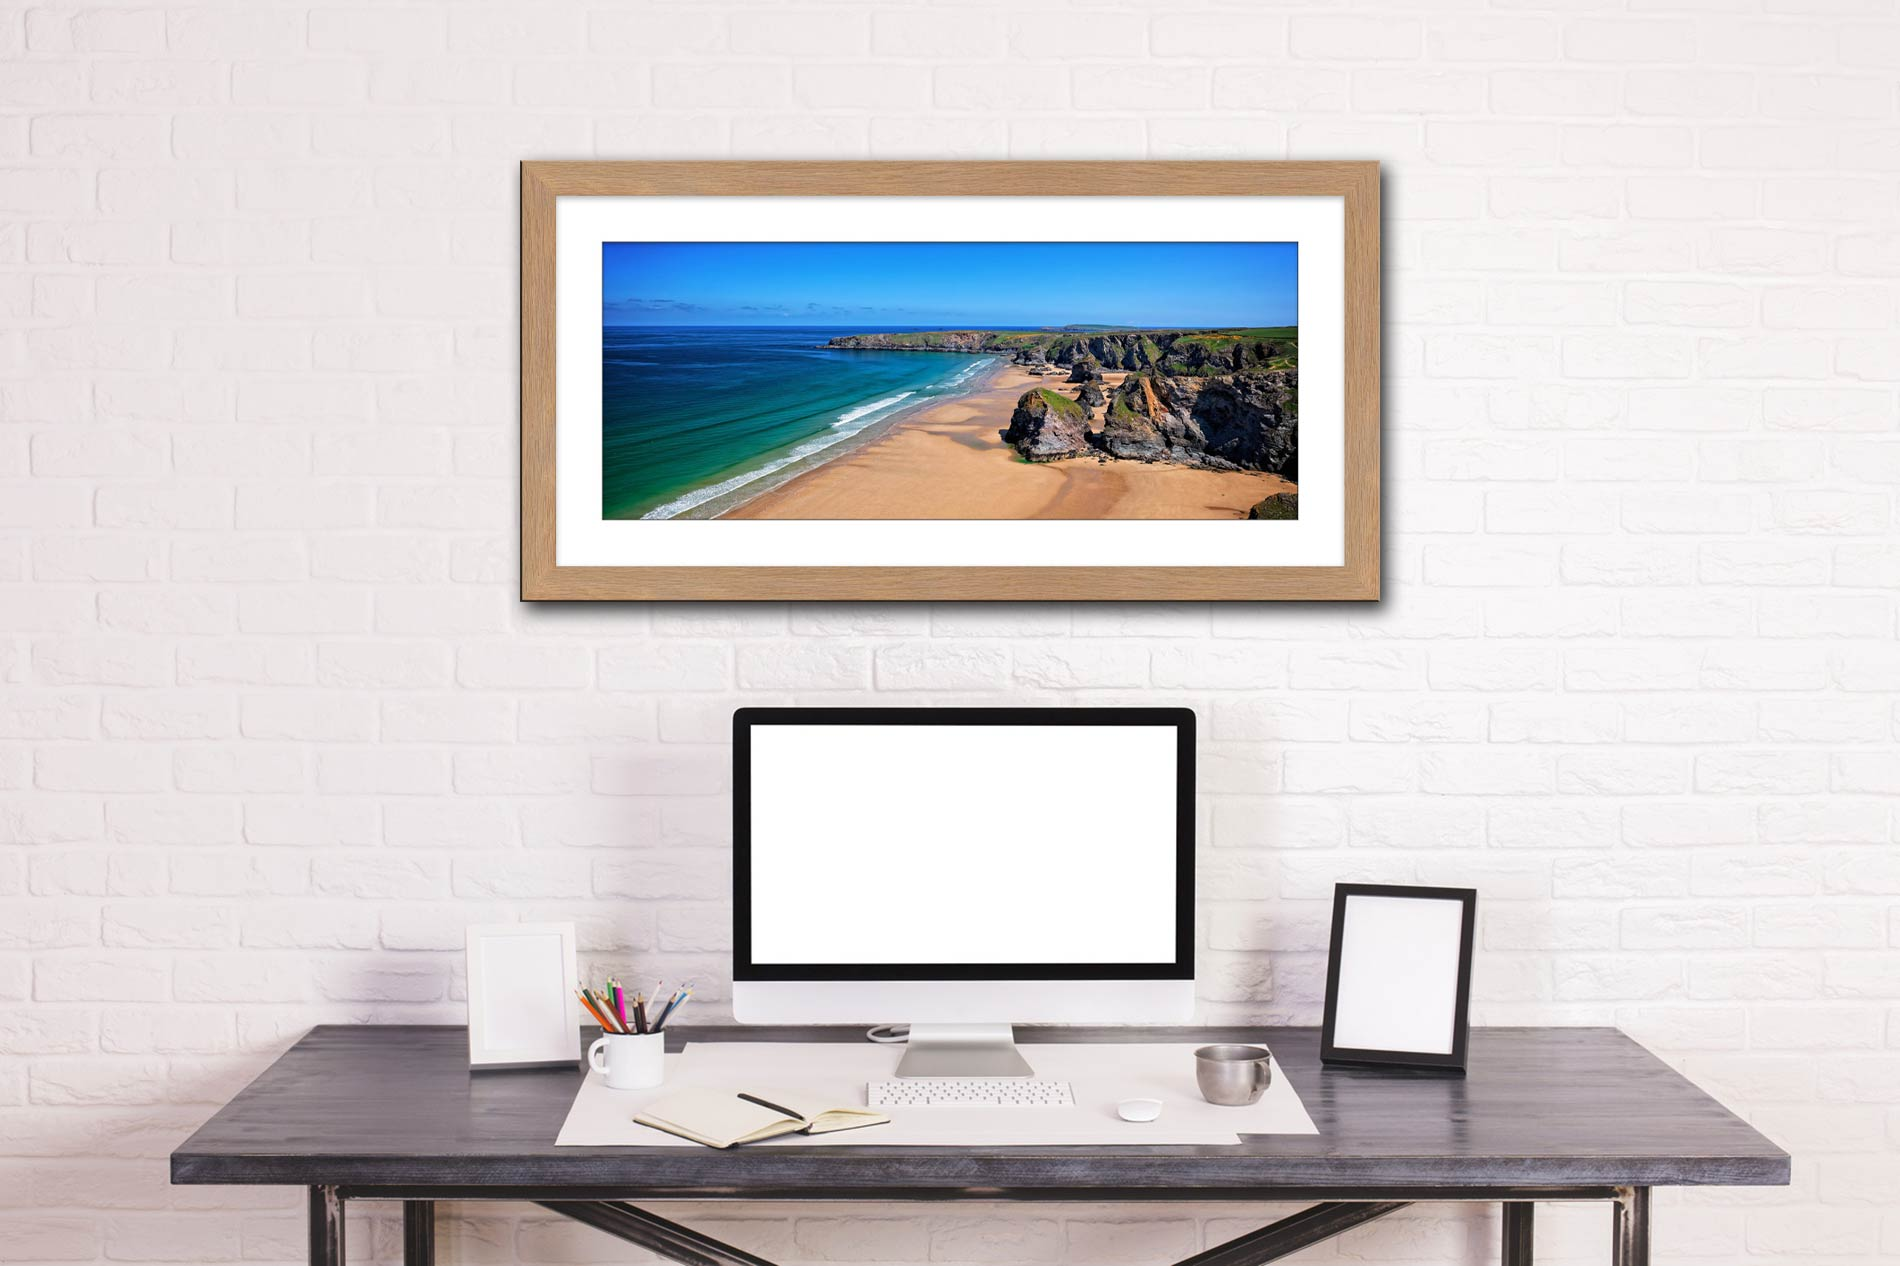 Bedruthan Beach Cornwall - Framed Print with Mount on Wall